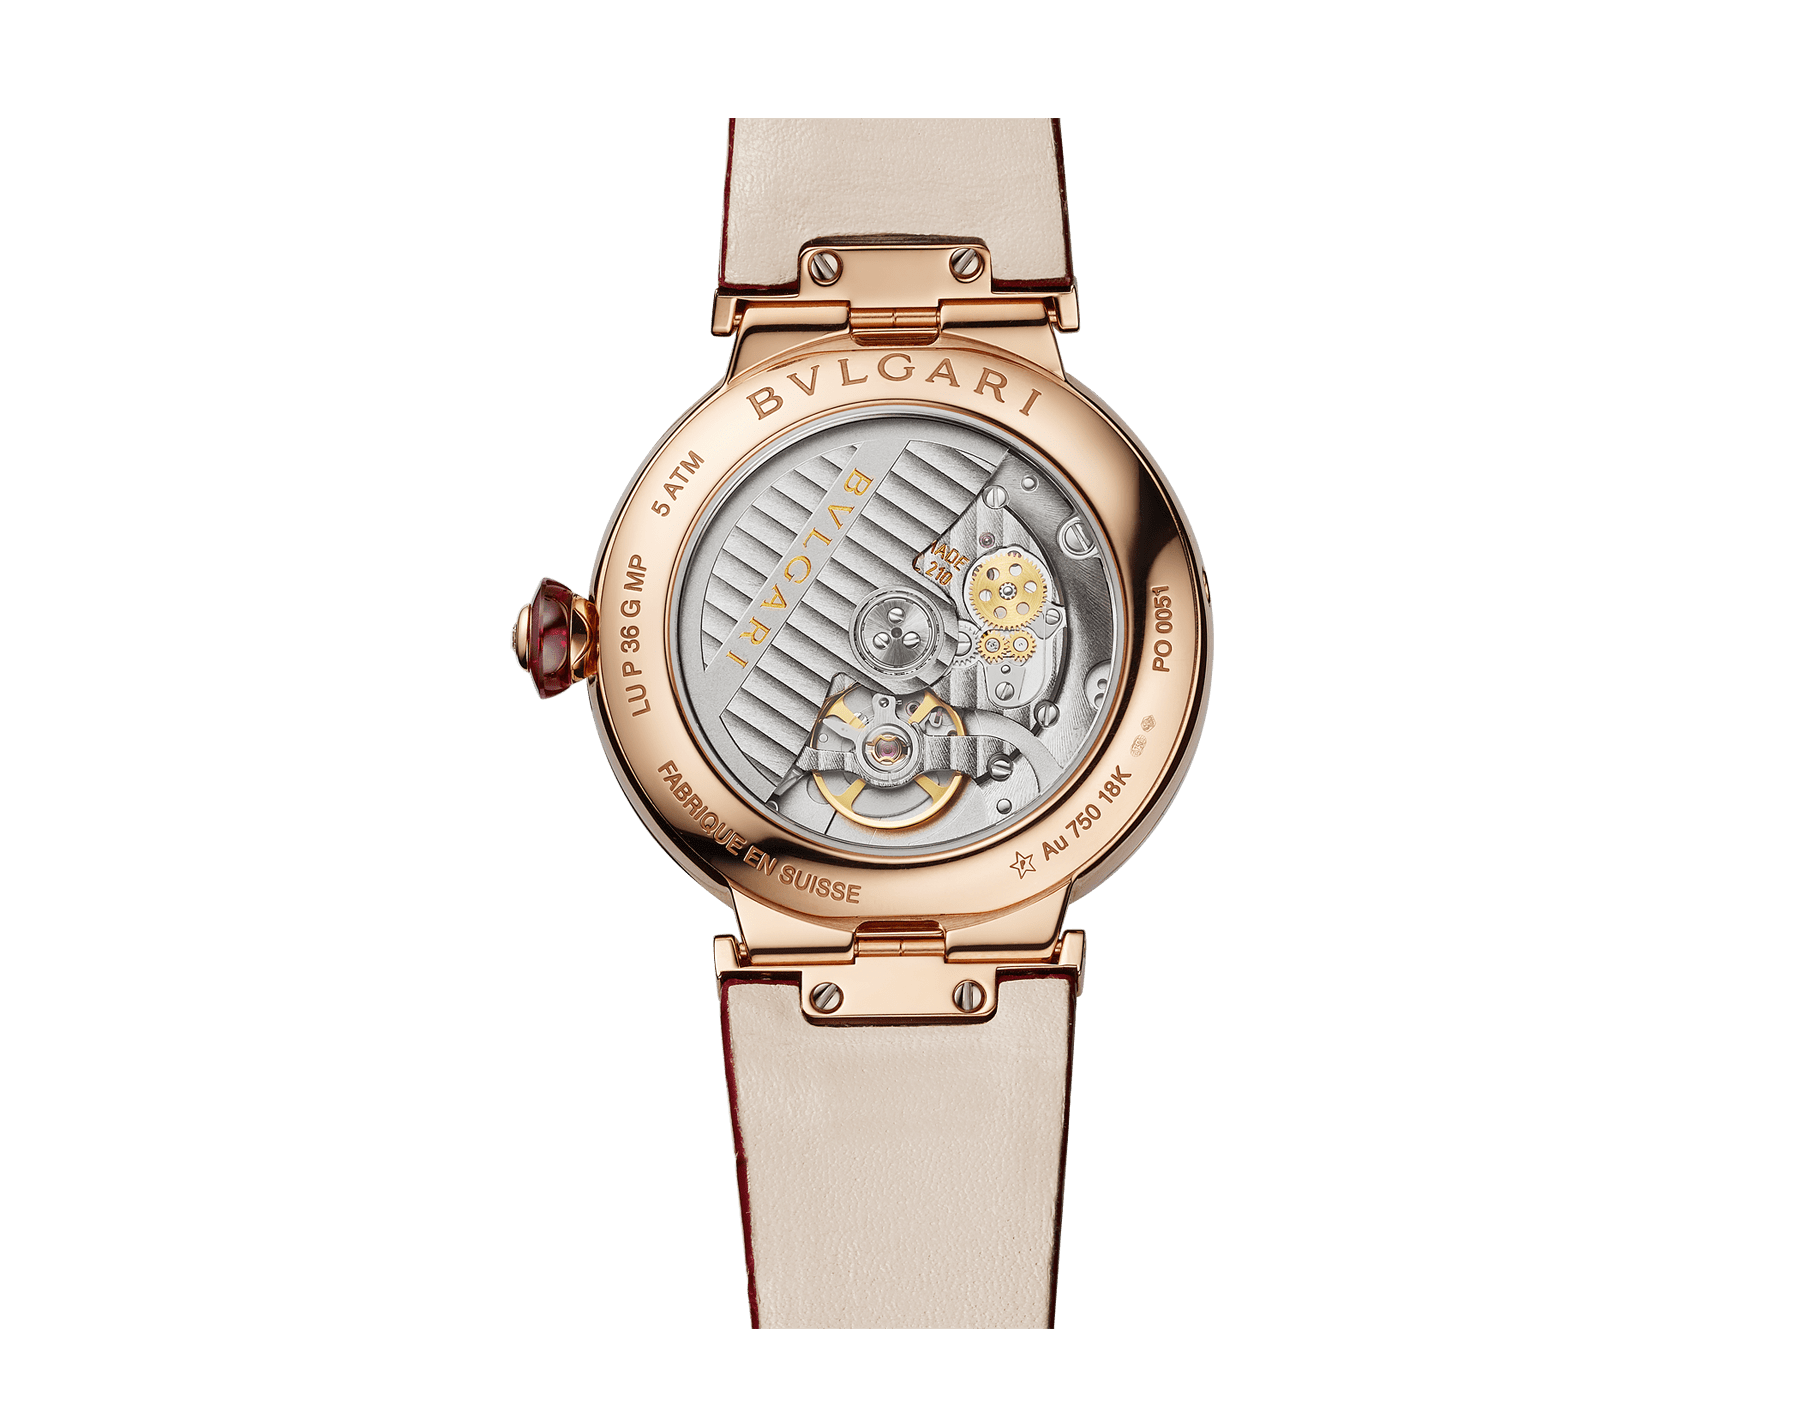 LVCEA Moon phase watch with 18 kt rose gold case set with diamonds, mother-of-pearl and heart of ruby dial, red alligator bracelet. 102686 image 4